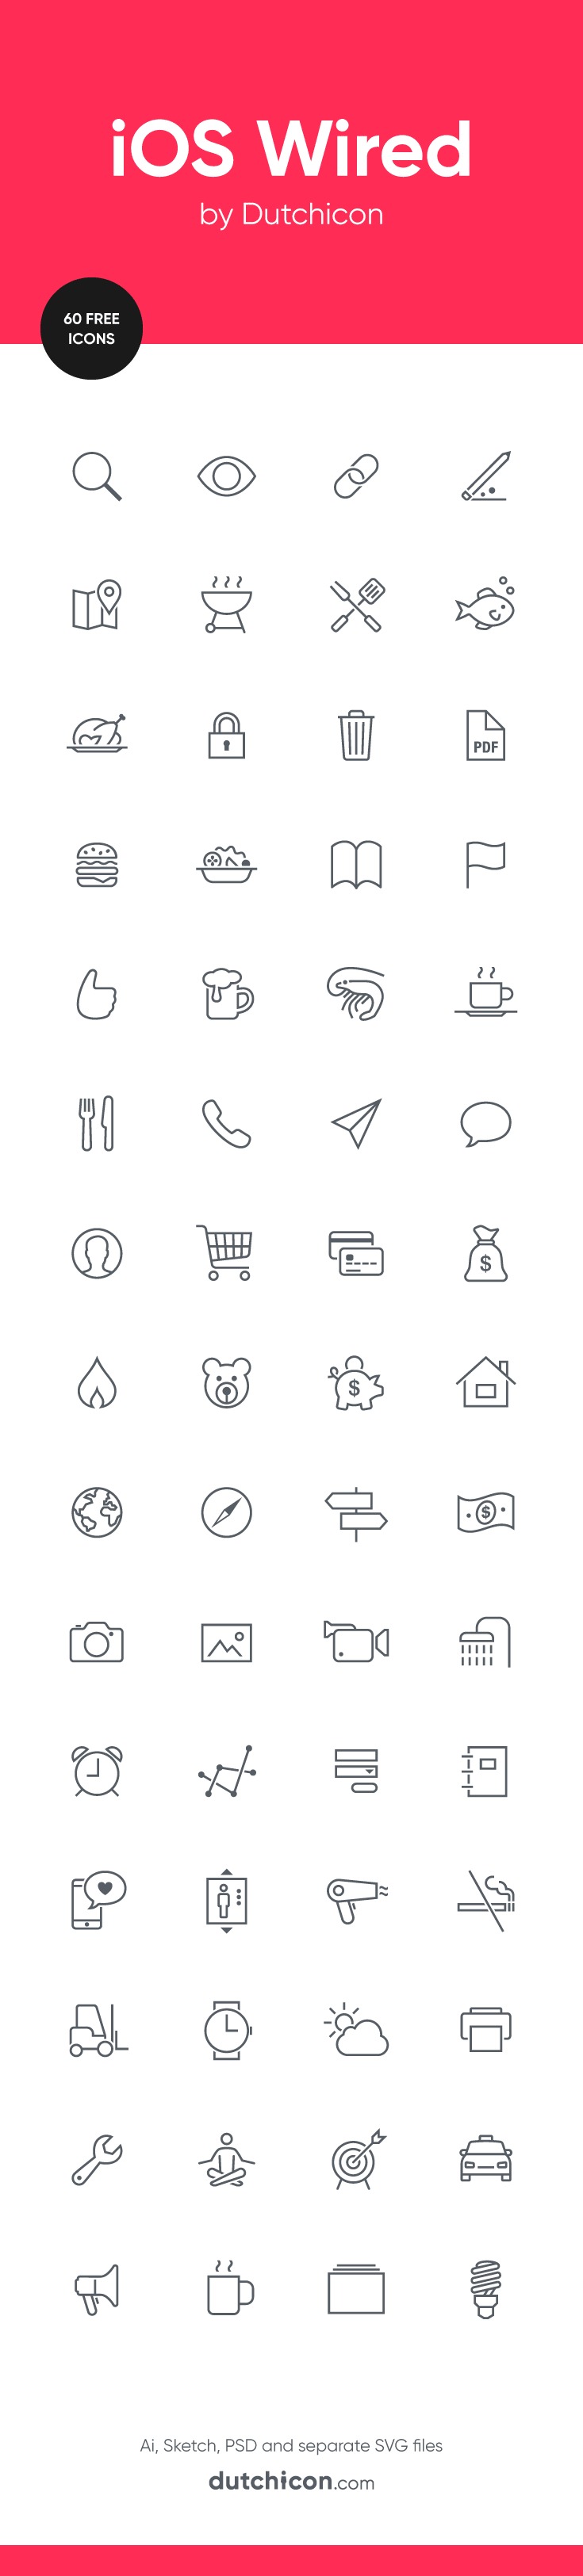 60 FREE icons in iOS Wired style available at Dutchicon.com. Direct download: https://dutchicon-store.myshopify.com/cart/31969714898:1?channel=buy_button